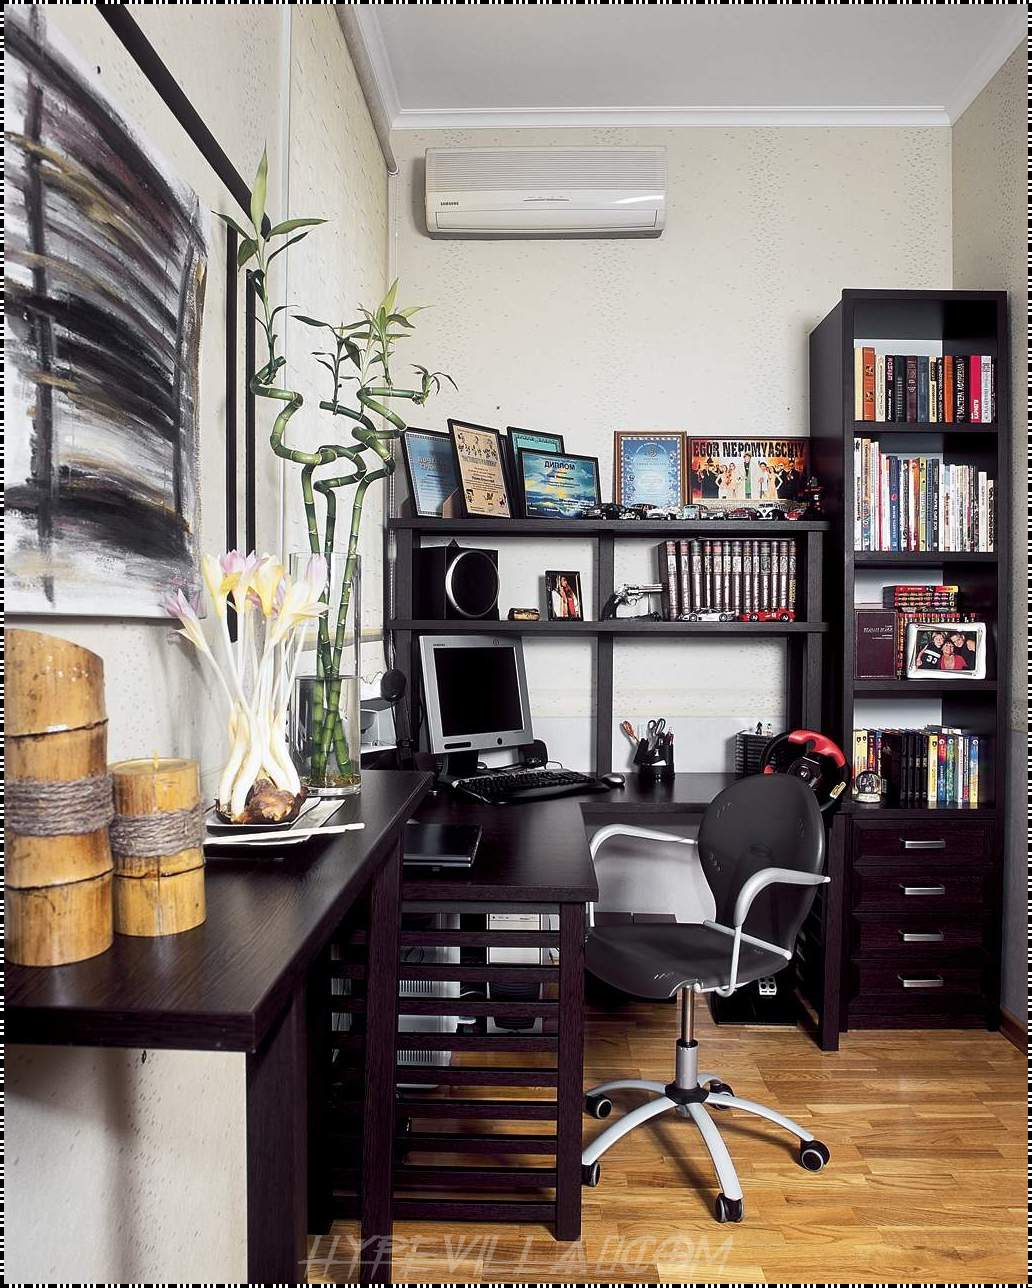 MODERN STUDY ROOM INTERIOR DESIGN IDEAS | Interior design ideas